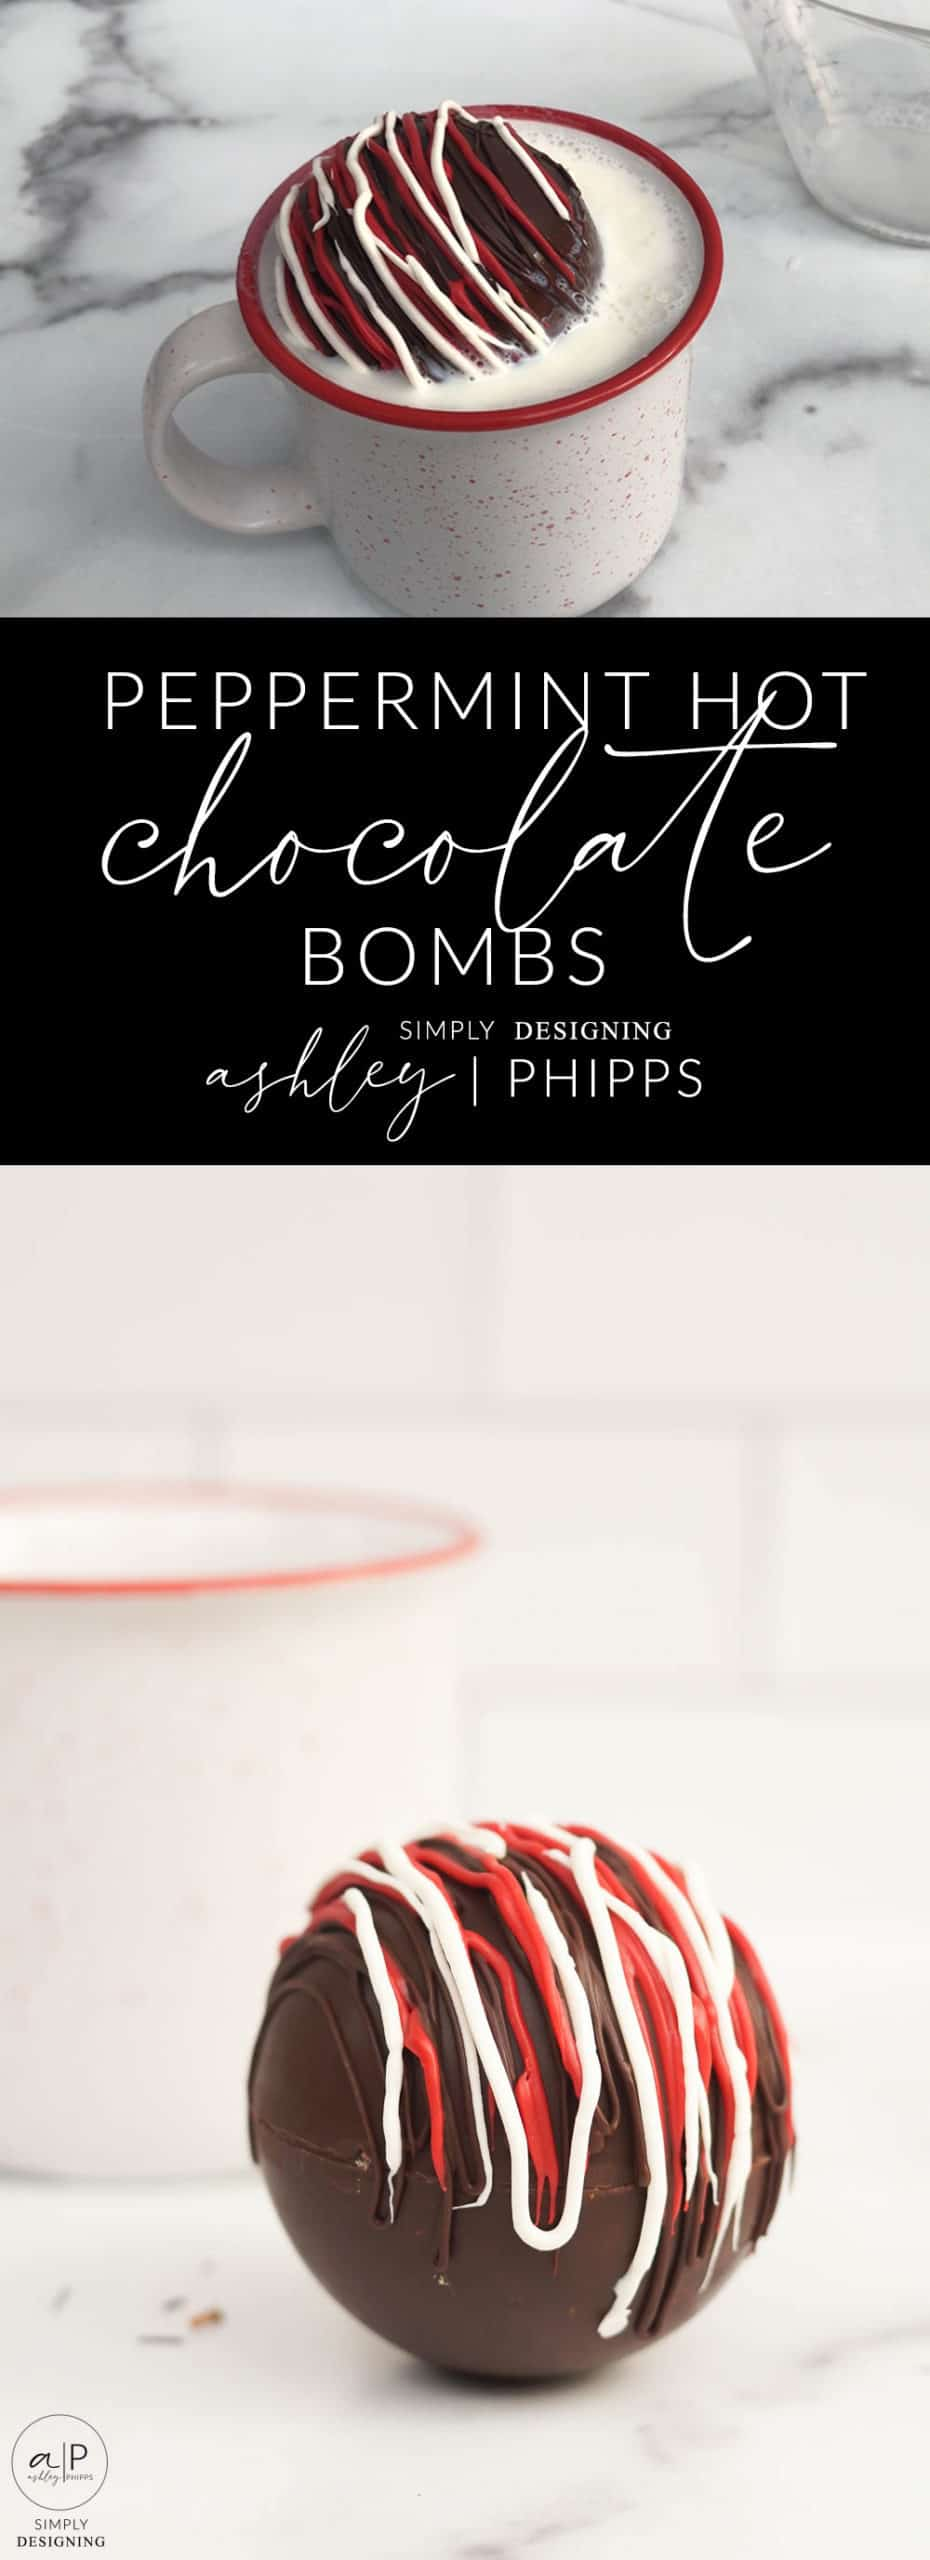 These Peppermint Hot Chocolate Bombs are made with delicious chocolate hot cocoa mix and crushed candy canes for a perfectly delectable and delicious warm drink